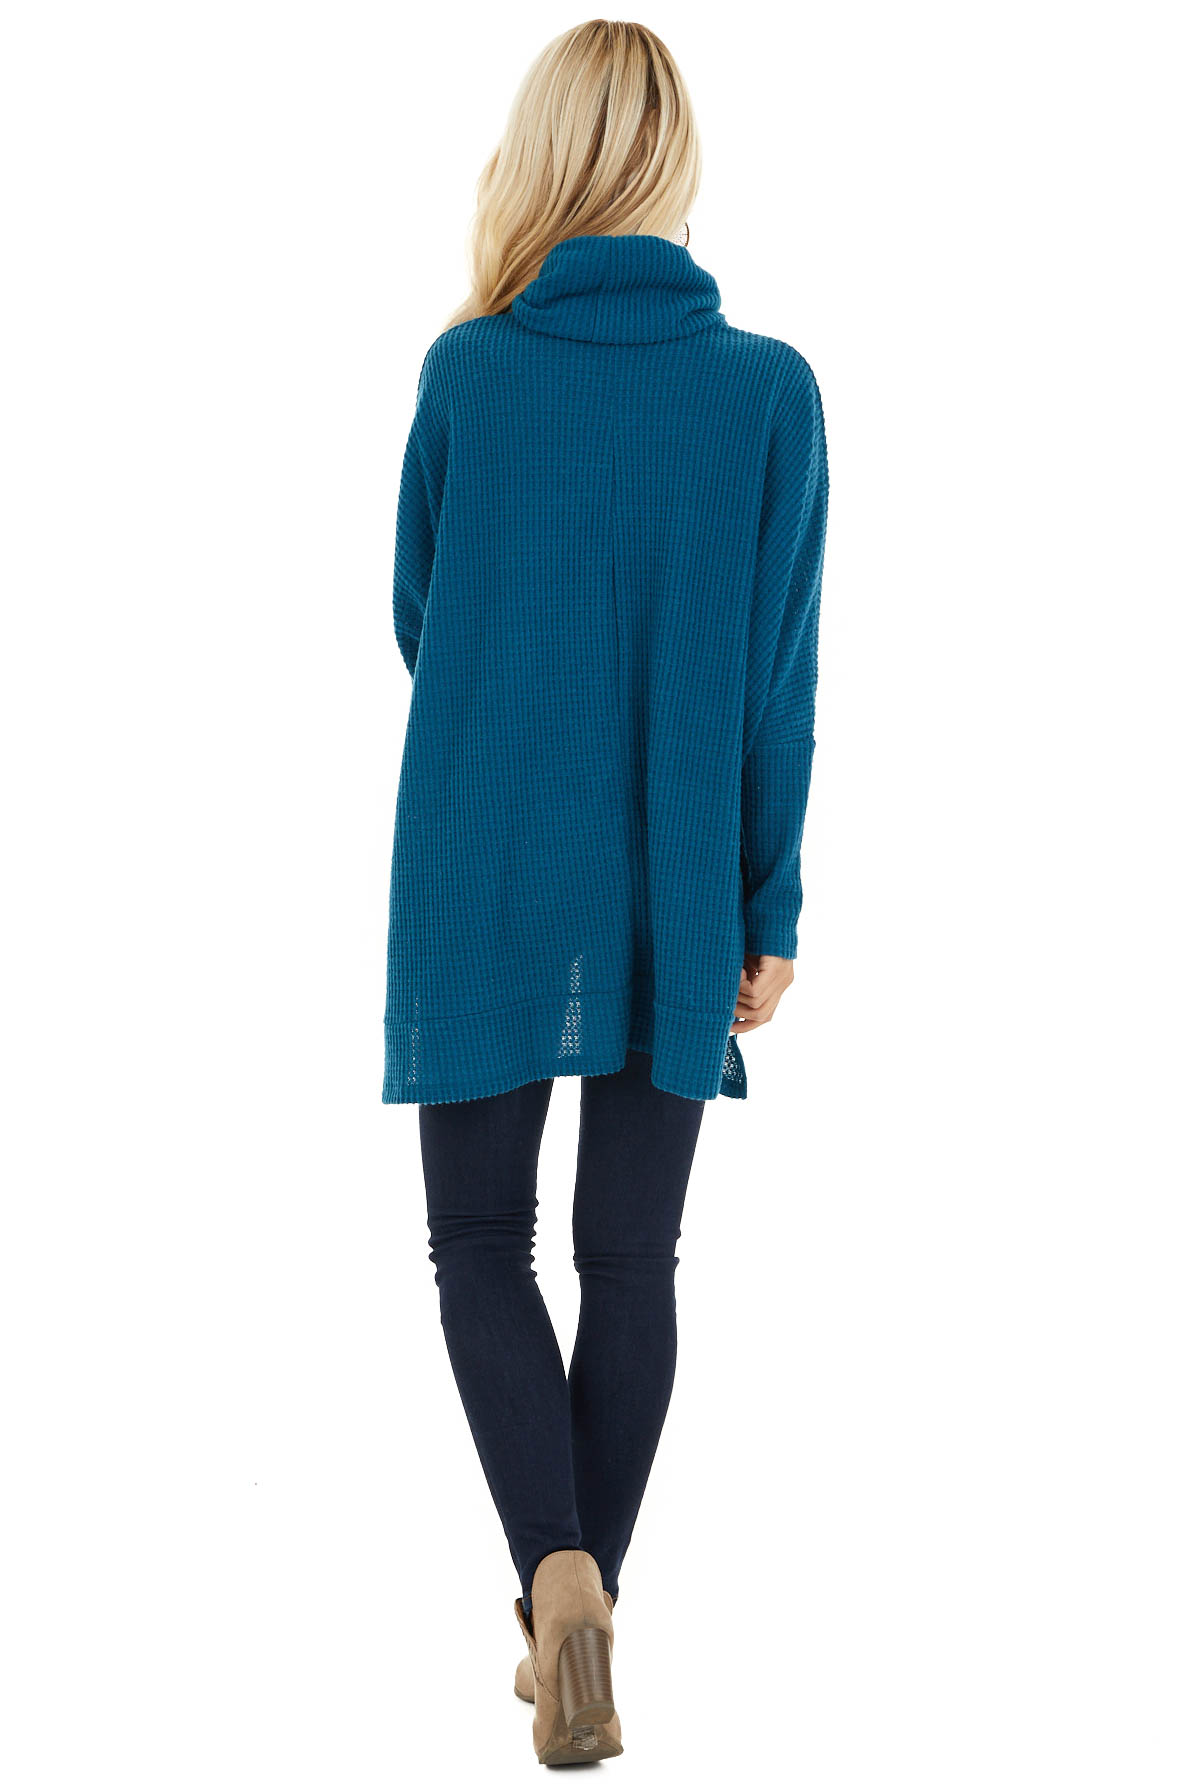 Dark Teal Waffle Knit Top with Cowl Neckline back full body